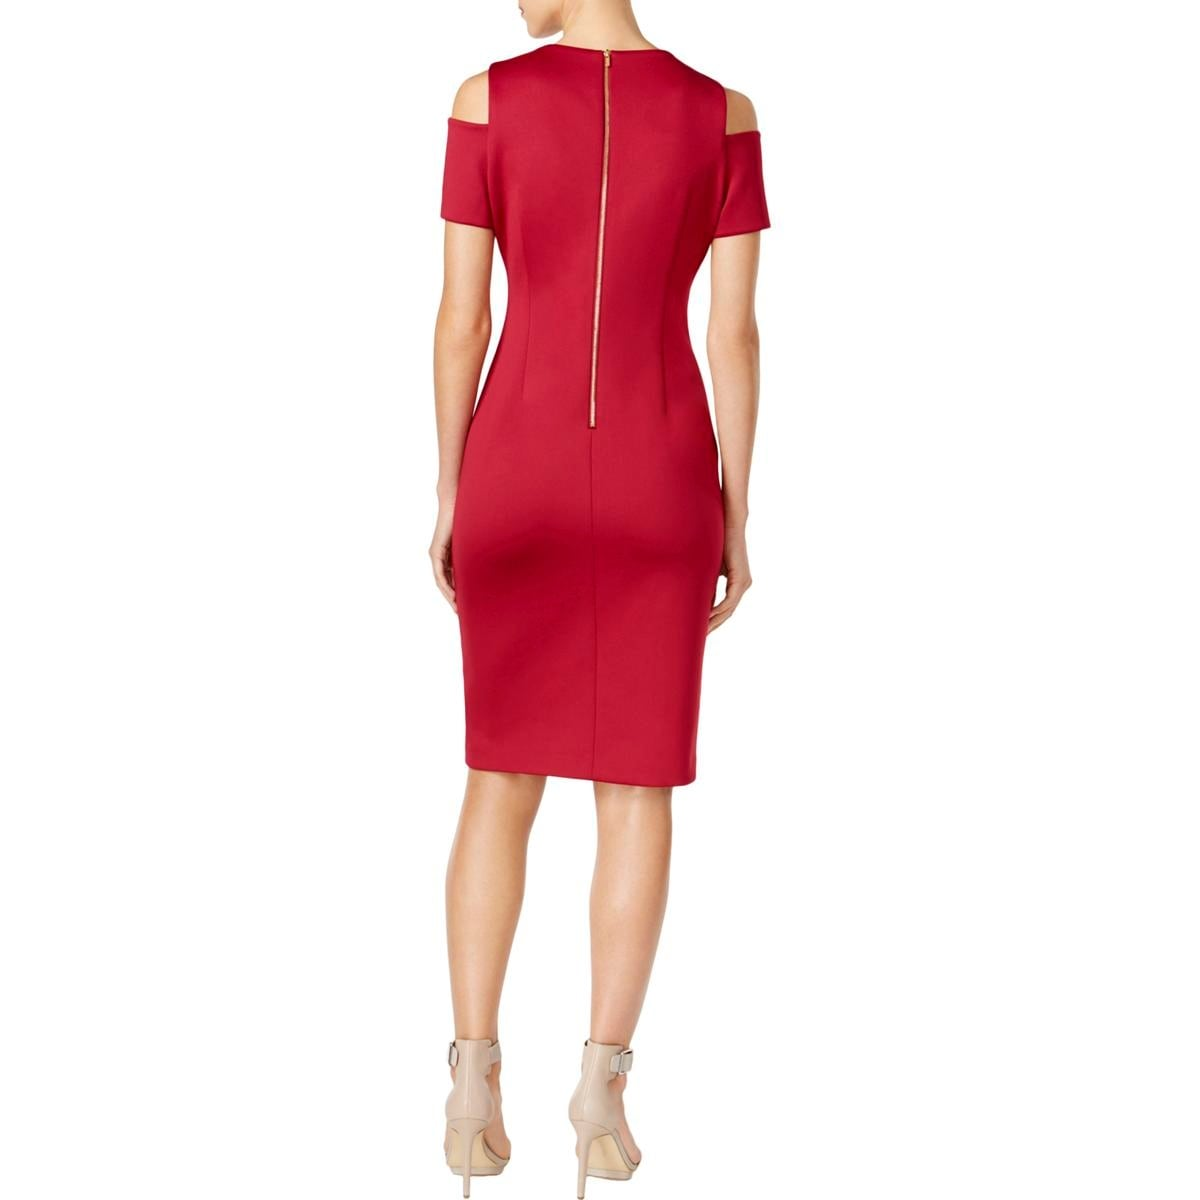 f2df9f1bc74 Shop Calvin Klein Womens Party Dress Cocktail Cold Shoulder - Free Shipping  Today - Overstock - 22890882